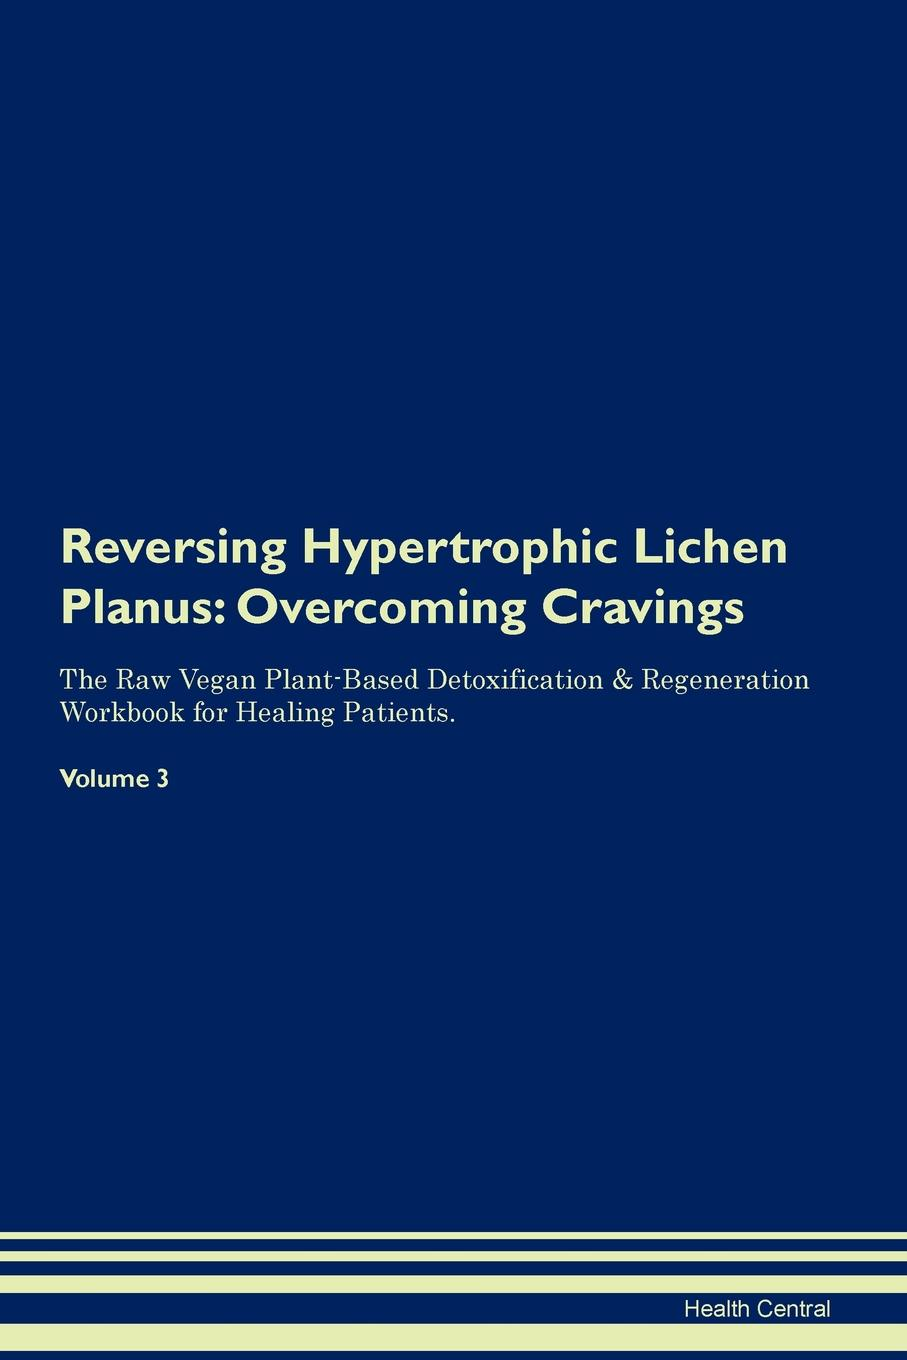 Фото - Health Central Reversing Hypertrophic Lichen Planus. Overcoming Cravings The Raw Vegan Plant-Based Detoxification & Regeneration Workbook for Healing Patients. Volume 3 health central reversing lichen sclerosus overcoming cravings the raw vegan plant based detoxification regeneration workbook for healing patients volume 3